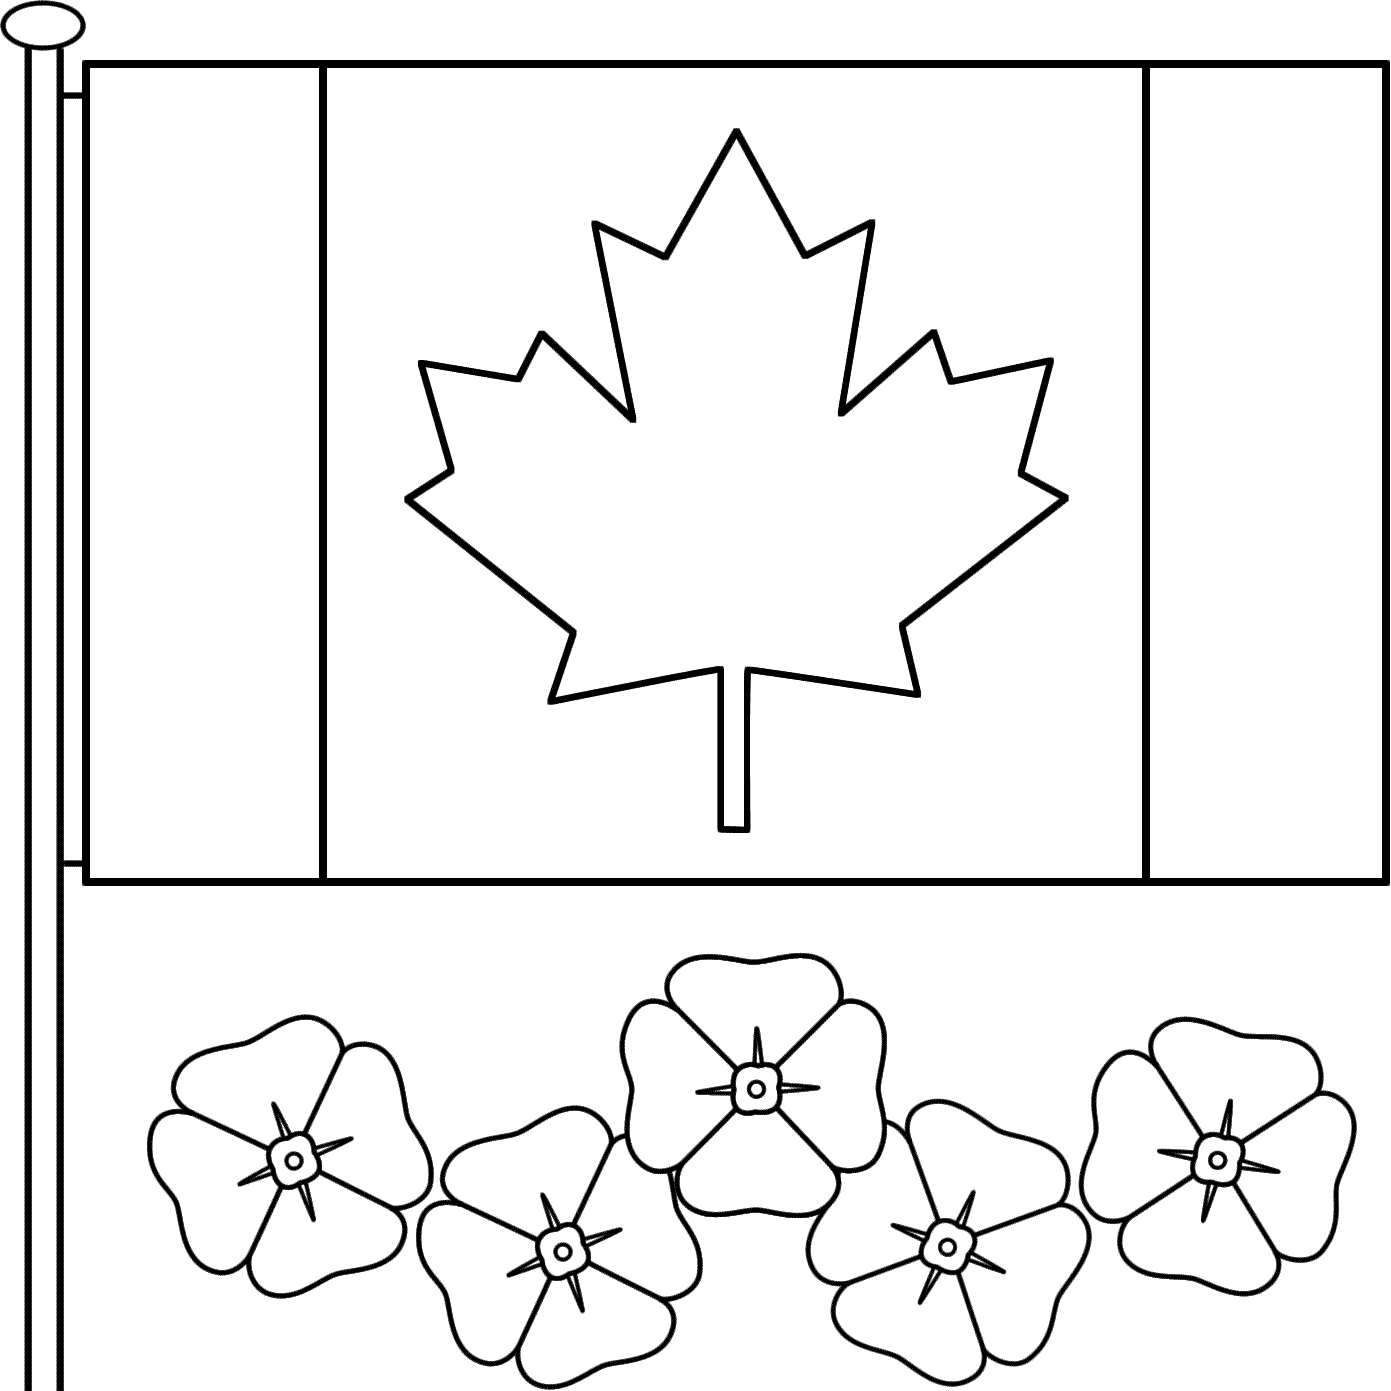 Coloring page for australian flag